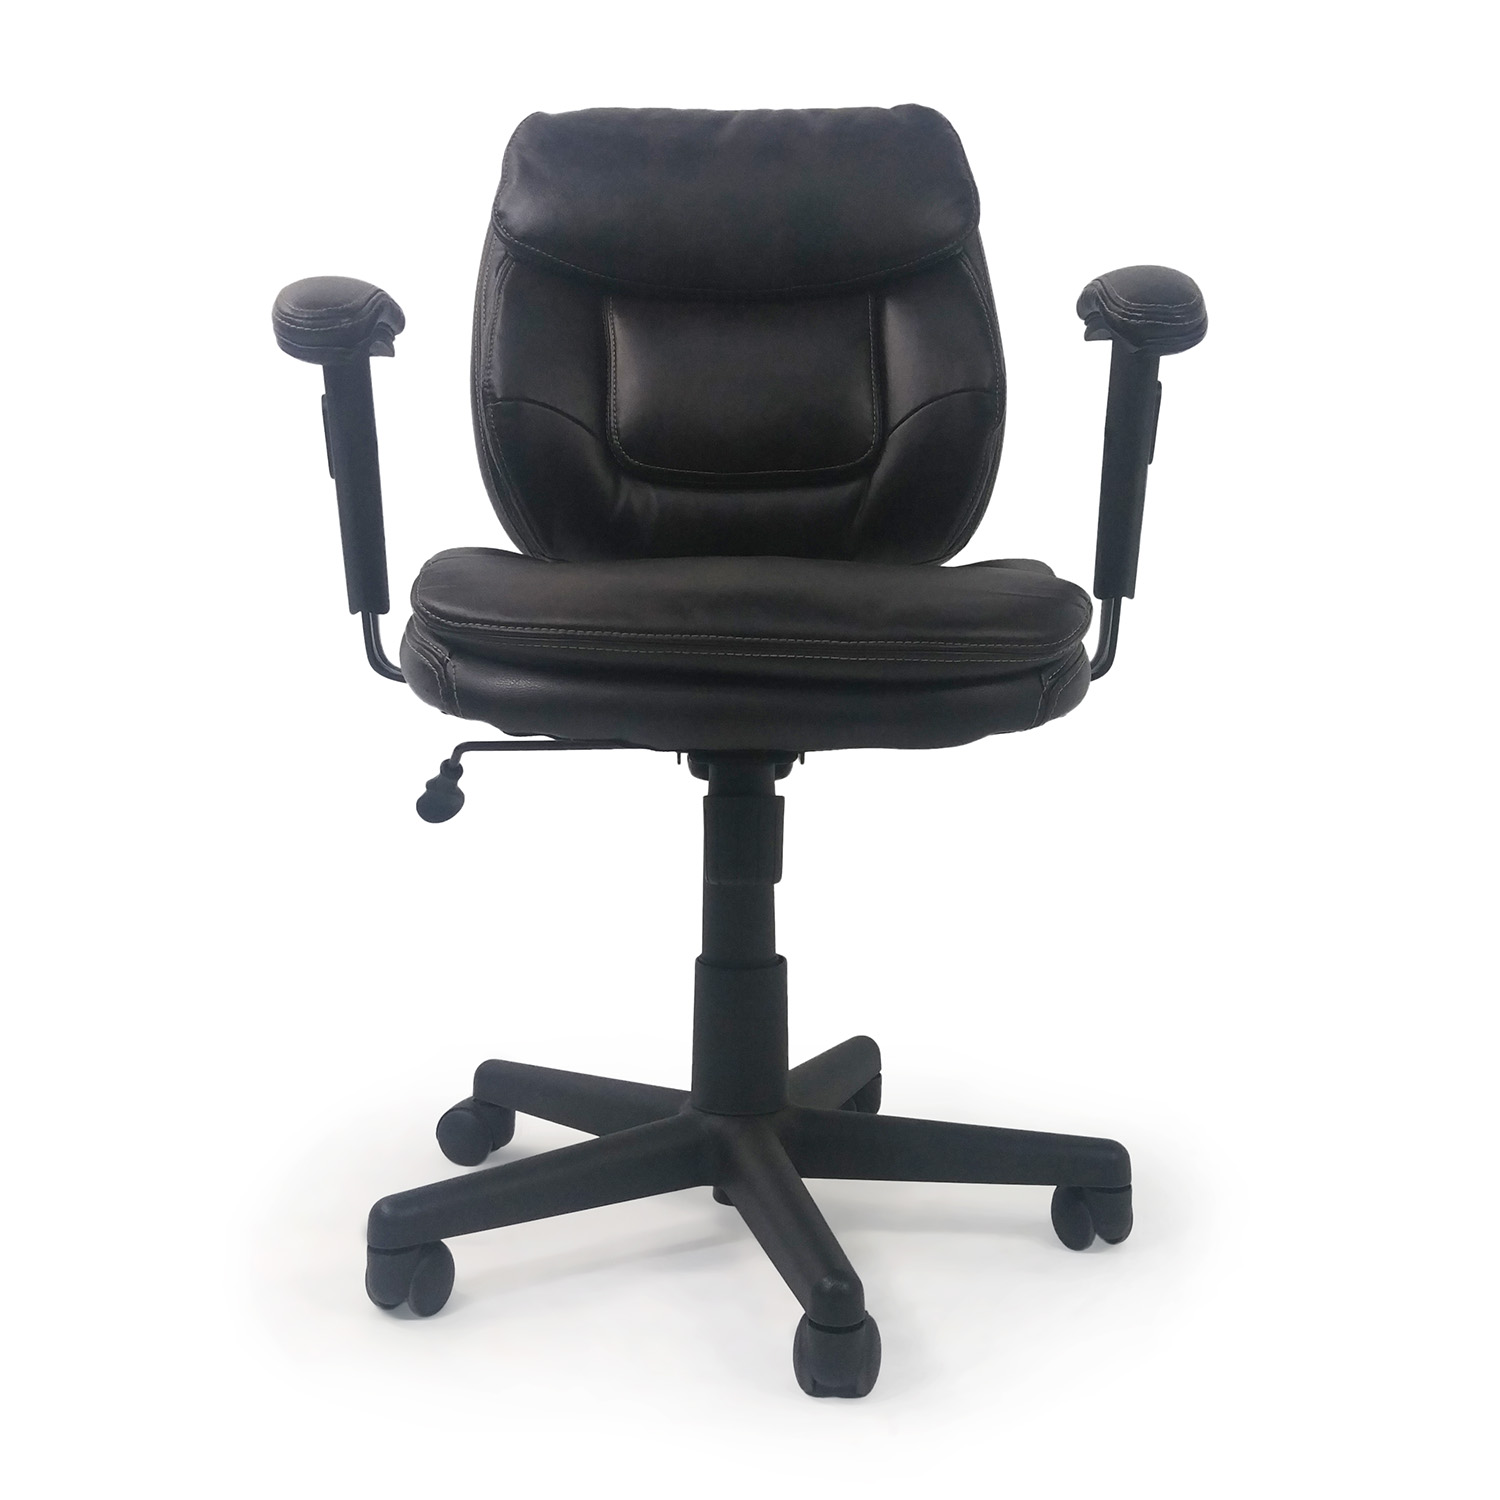 OFF Urth Urth Cava Black Leather Chairs Chairs - Ergonomic office chair uk